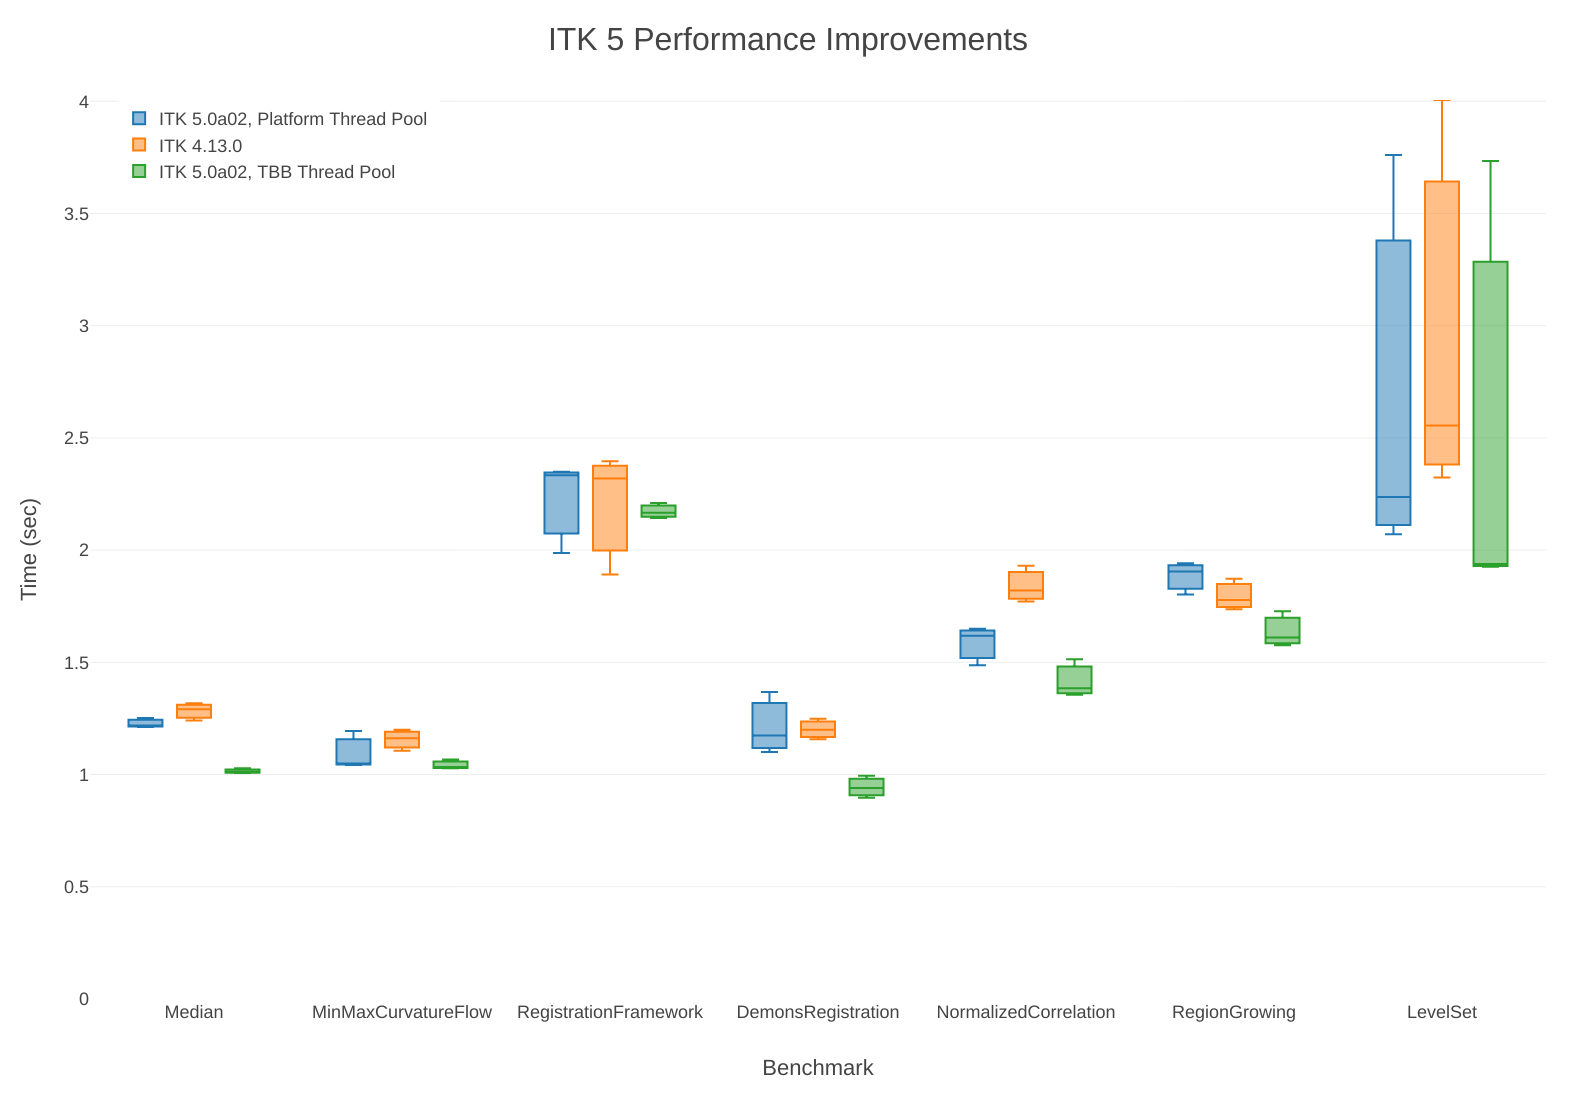 ITK 5 Performance Benchmarks